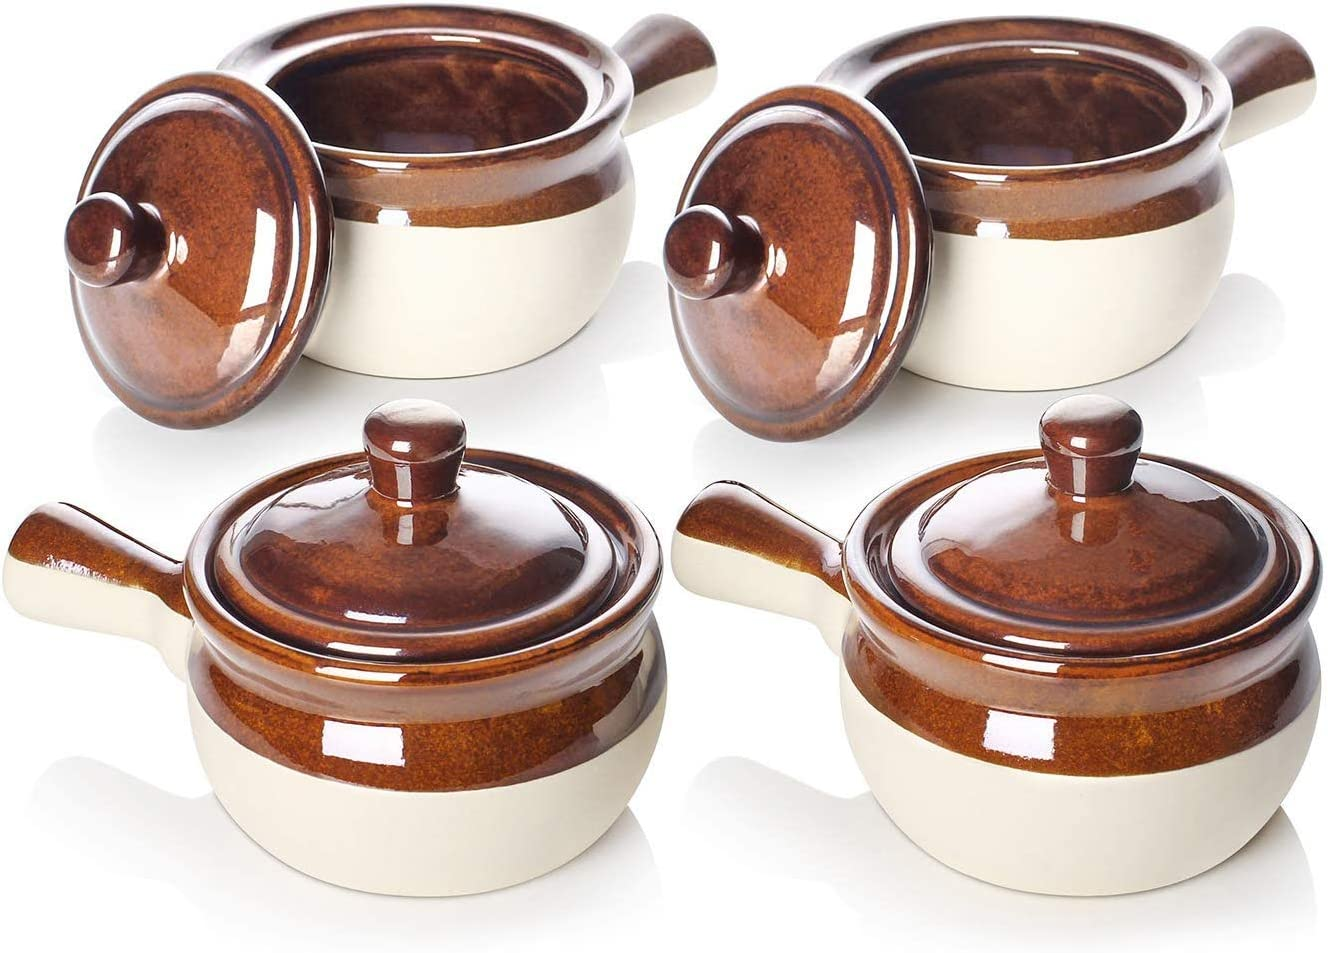 LIFVER French Onion Soup Crocks, Soup Bowls with Handles and Lids, 18 Ounces Ceramic Bowls for Soup, Stew, Chili, Set of 4